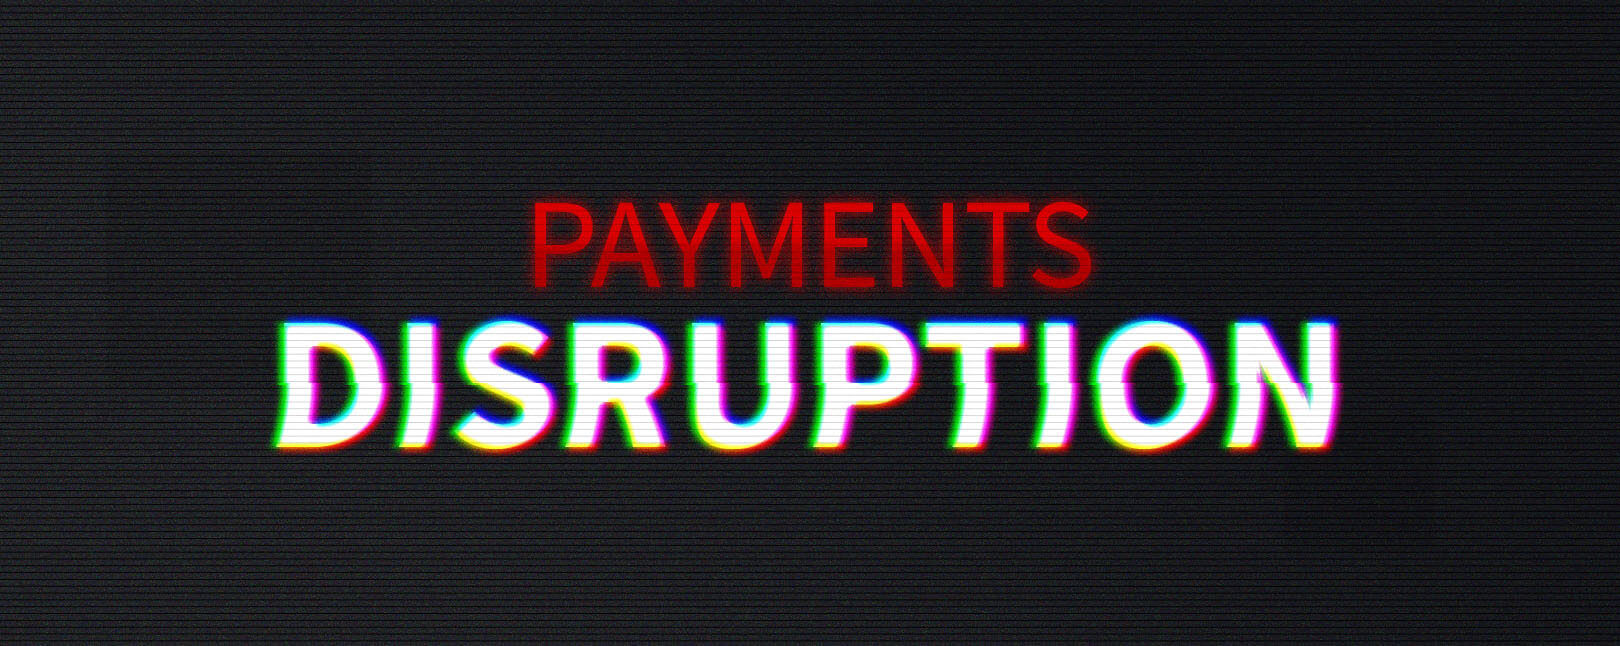 Payments Disruption